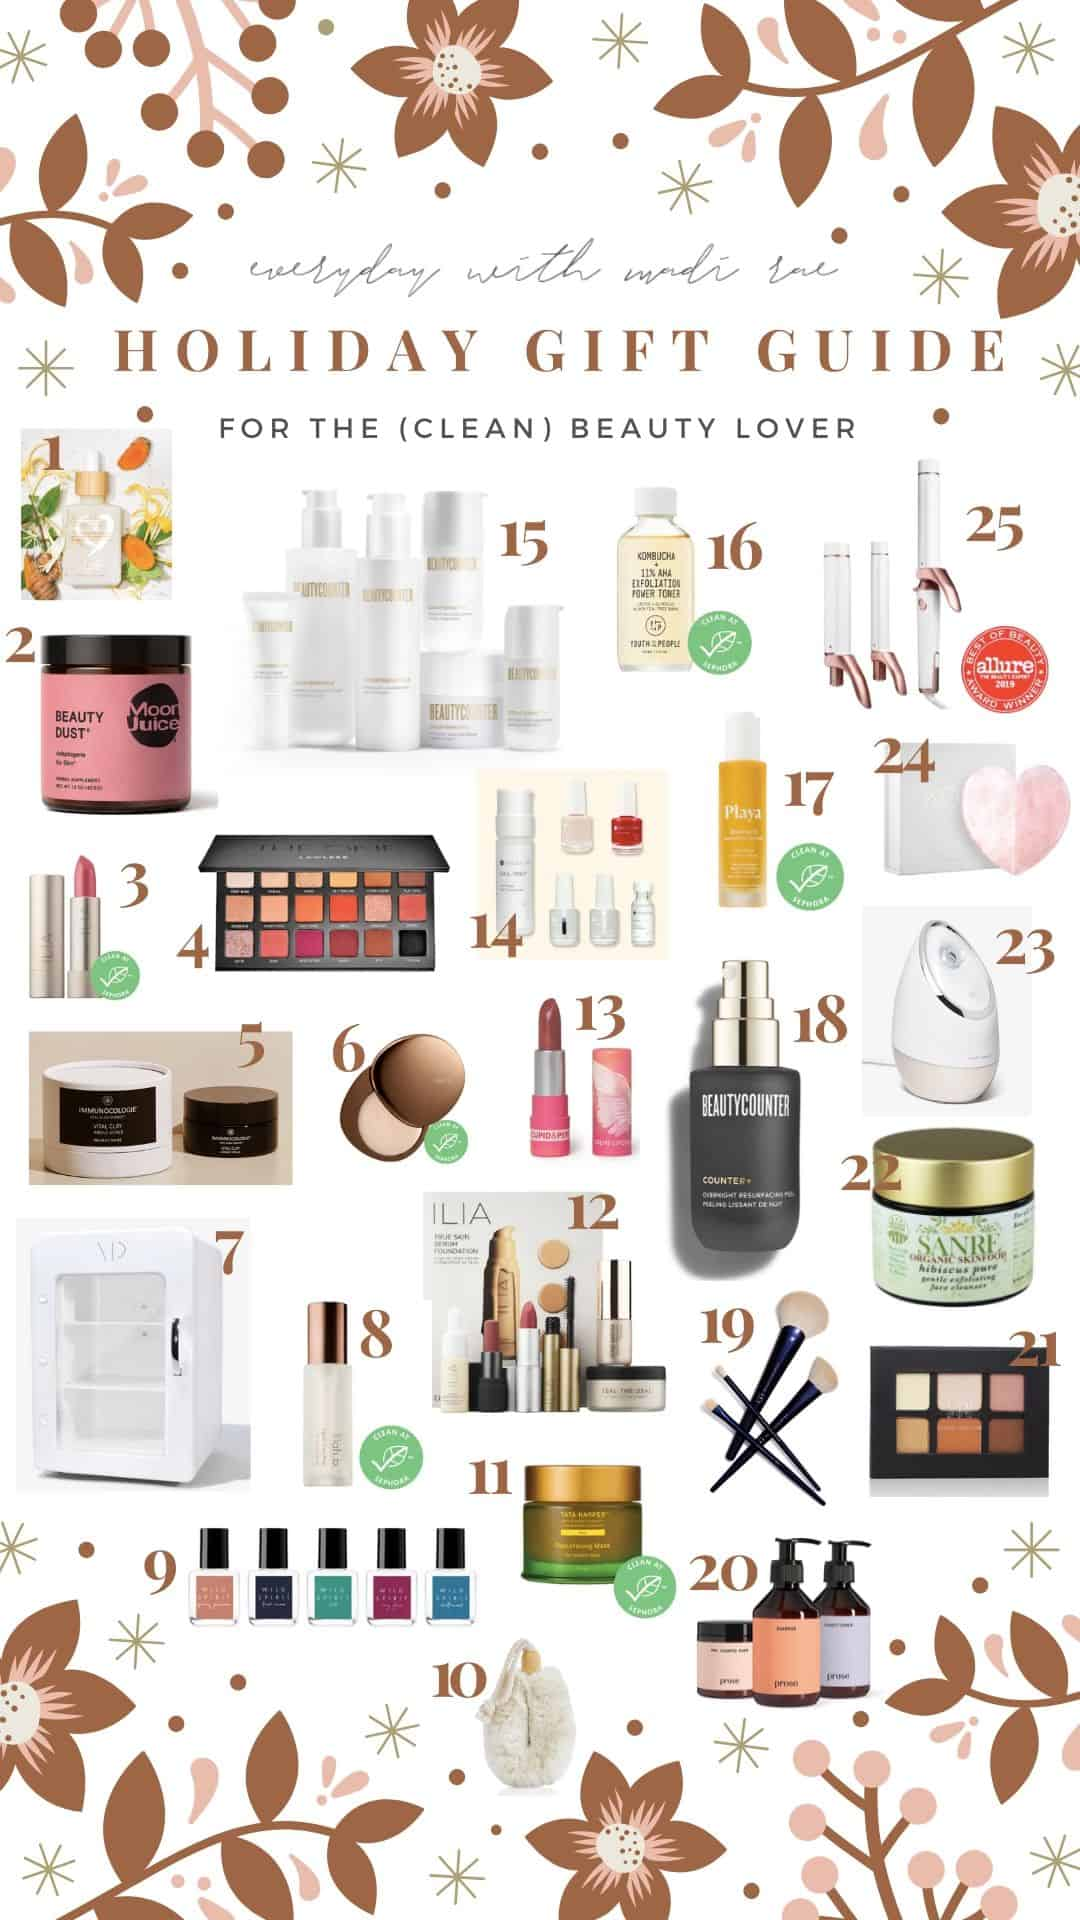 This 2019 Holiday Gift Guide for any clean beauty lover includes amazing & safe skincare, gorgeous makeup products, clean fragrances, hair care & more!